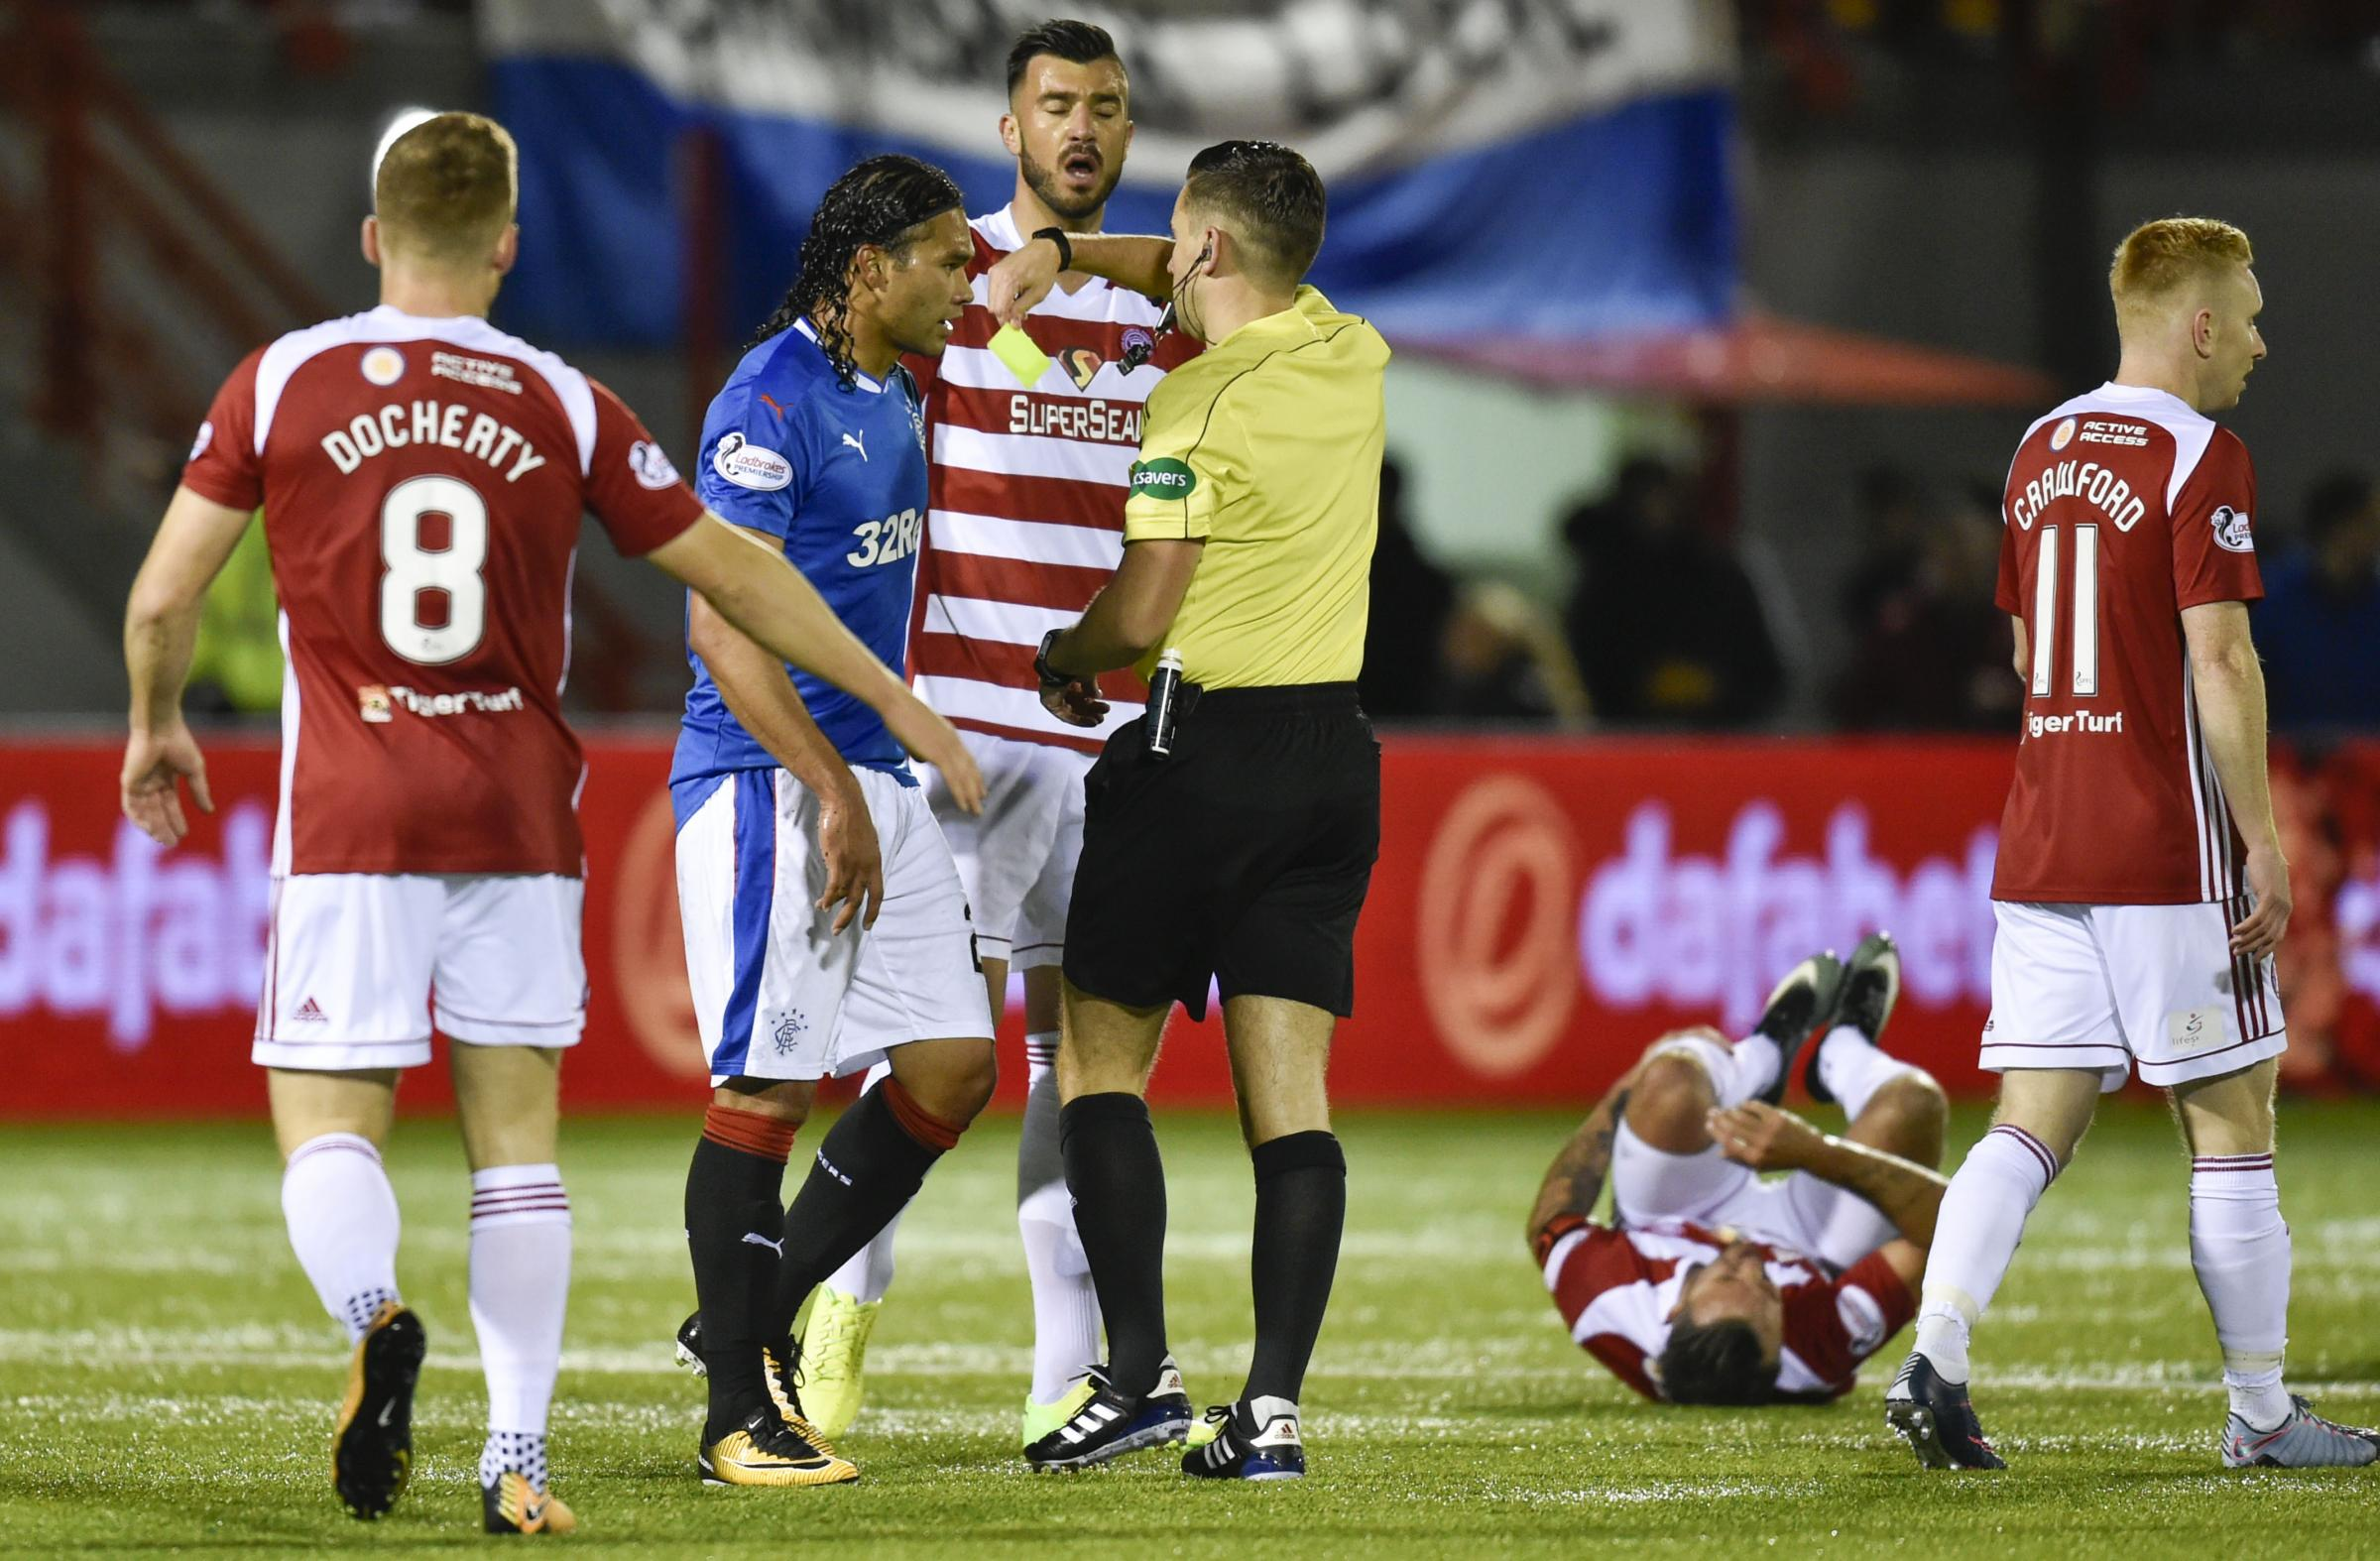 Carlos Pena is shown a yellow card after a challenge on Dougie Imrie